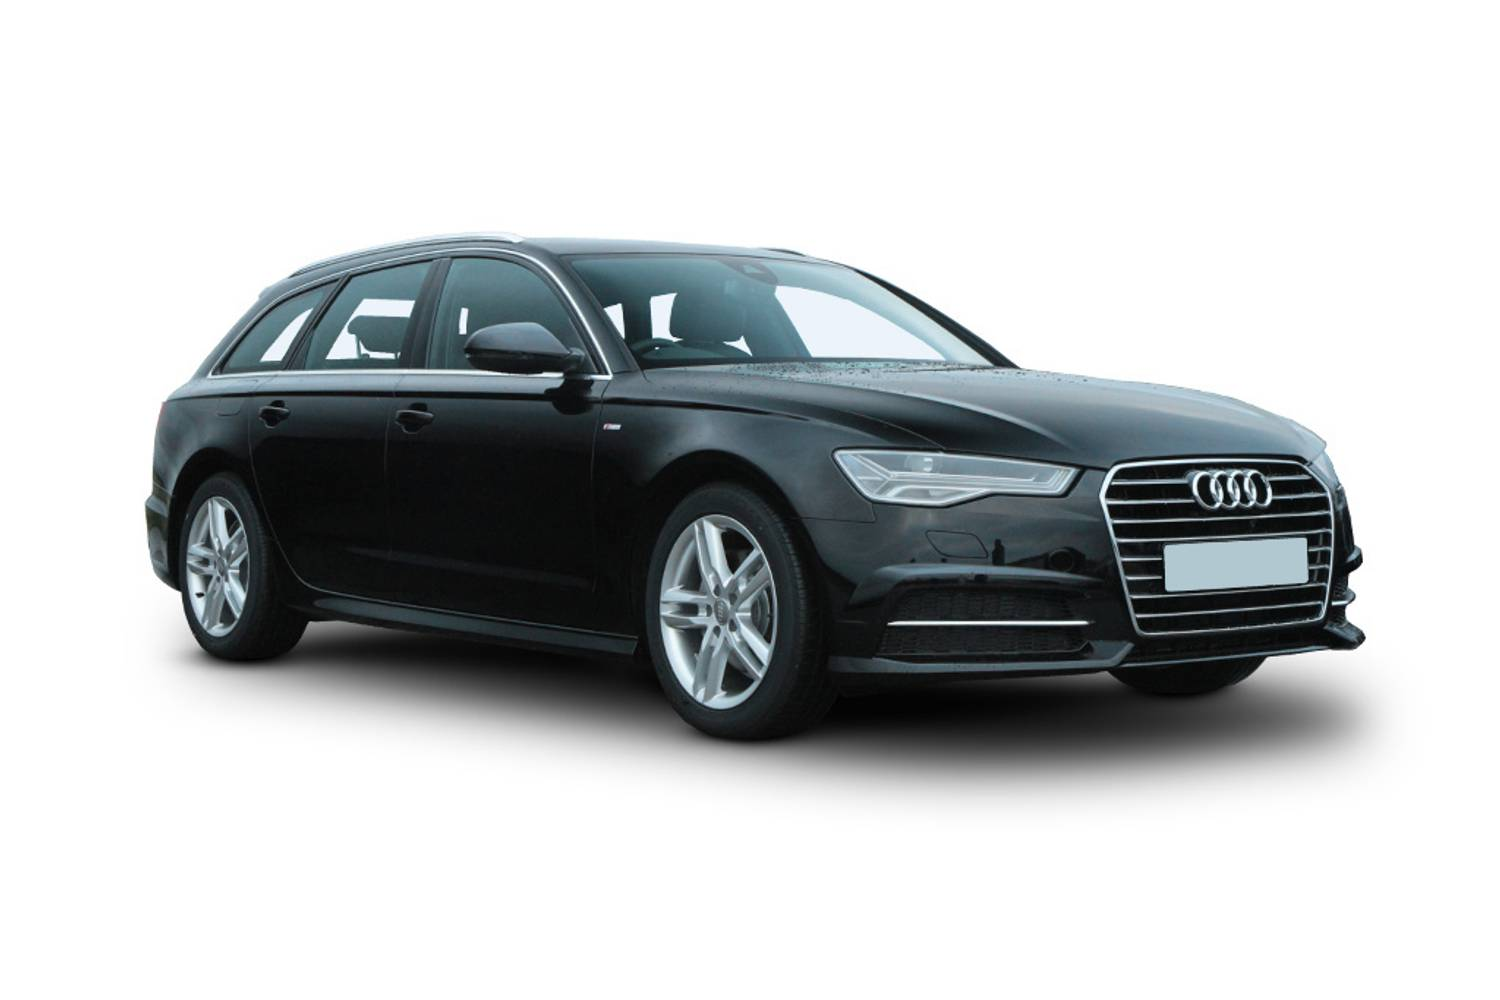 new audi a6 avant special editions 3 0 tdi 272 ps quattro black edn 5 door s tronic tech. Black Bedroom Furniture Sets. Home Design Ideas